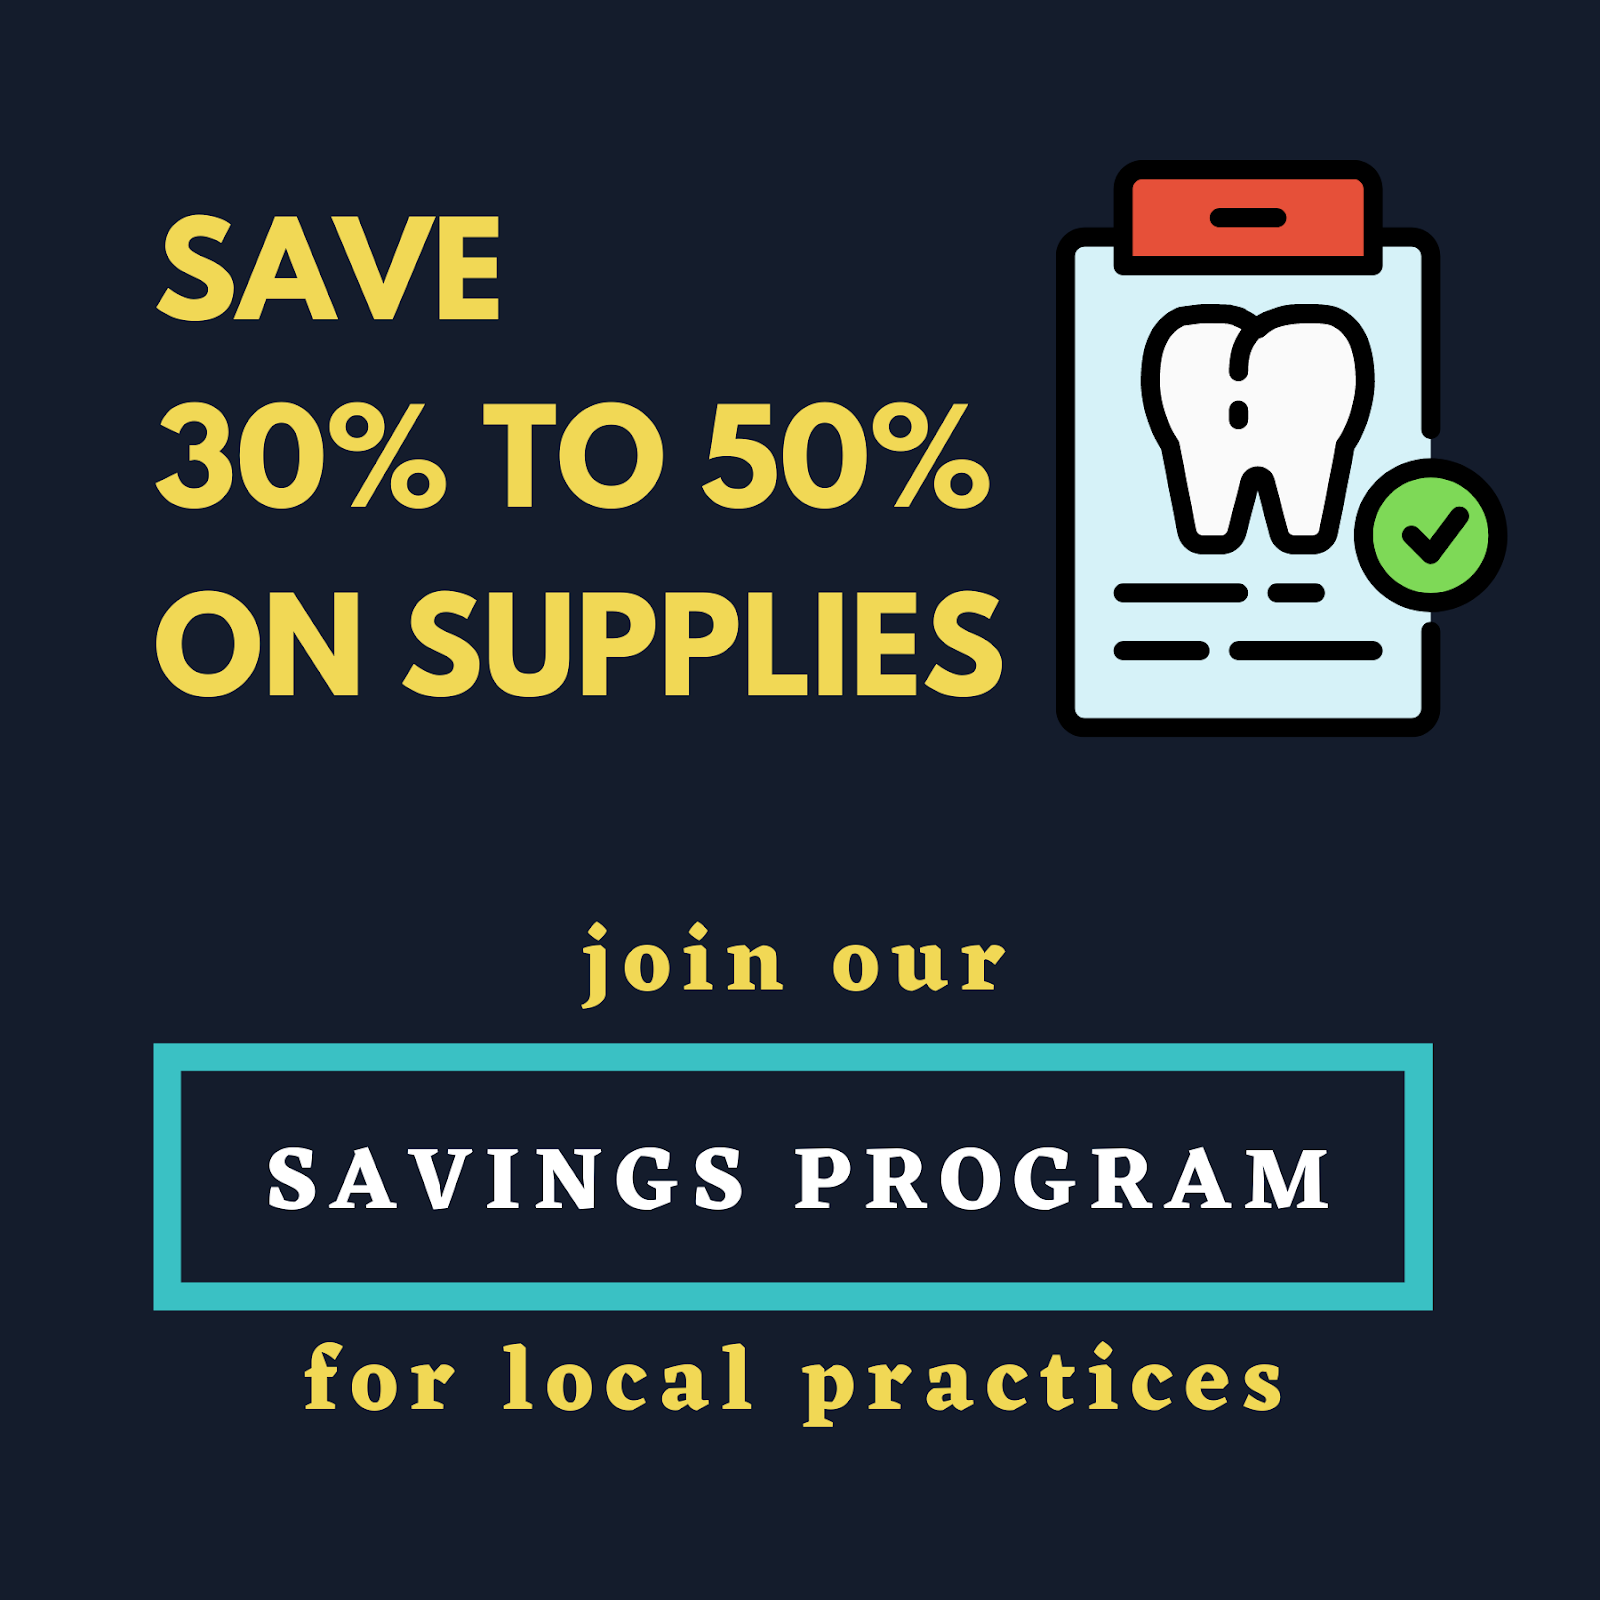 Save 30% to 50% on supplies